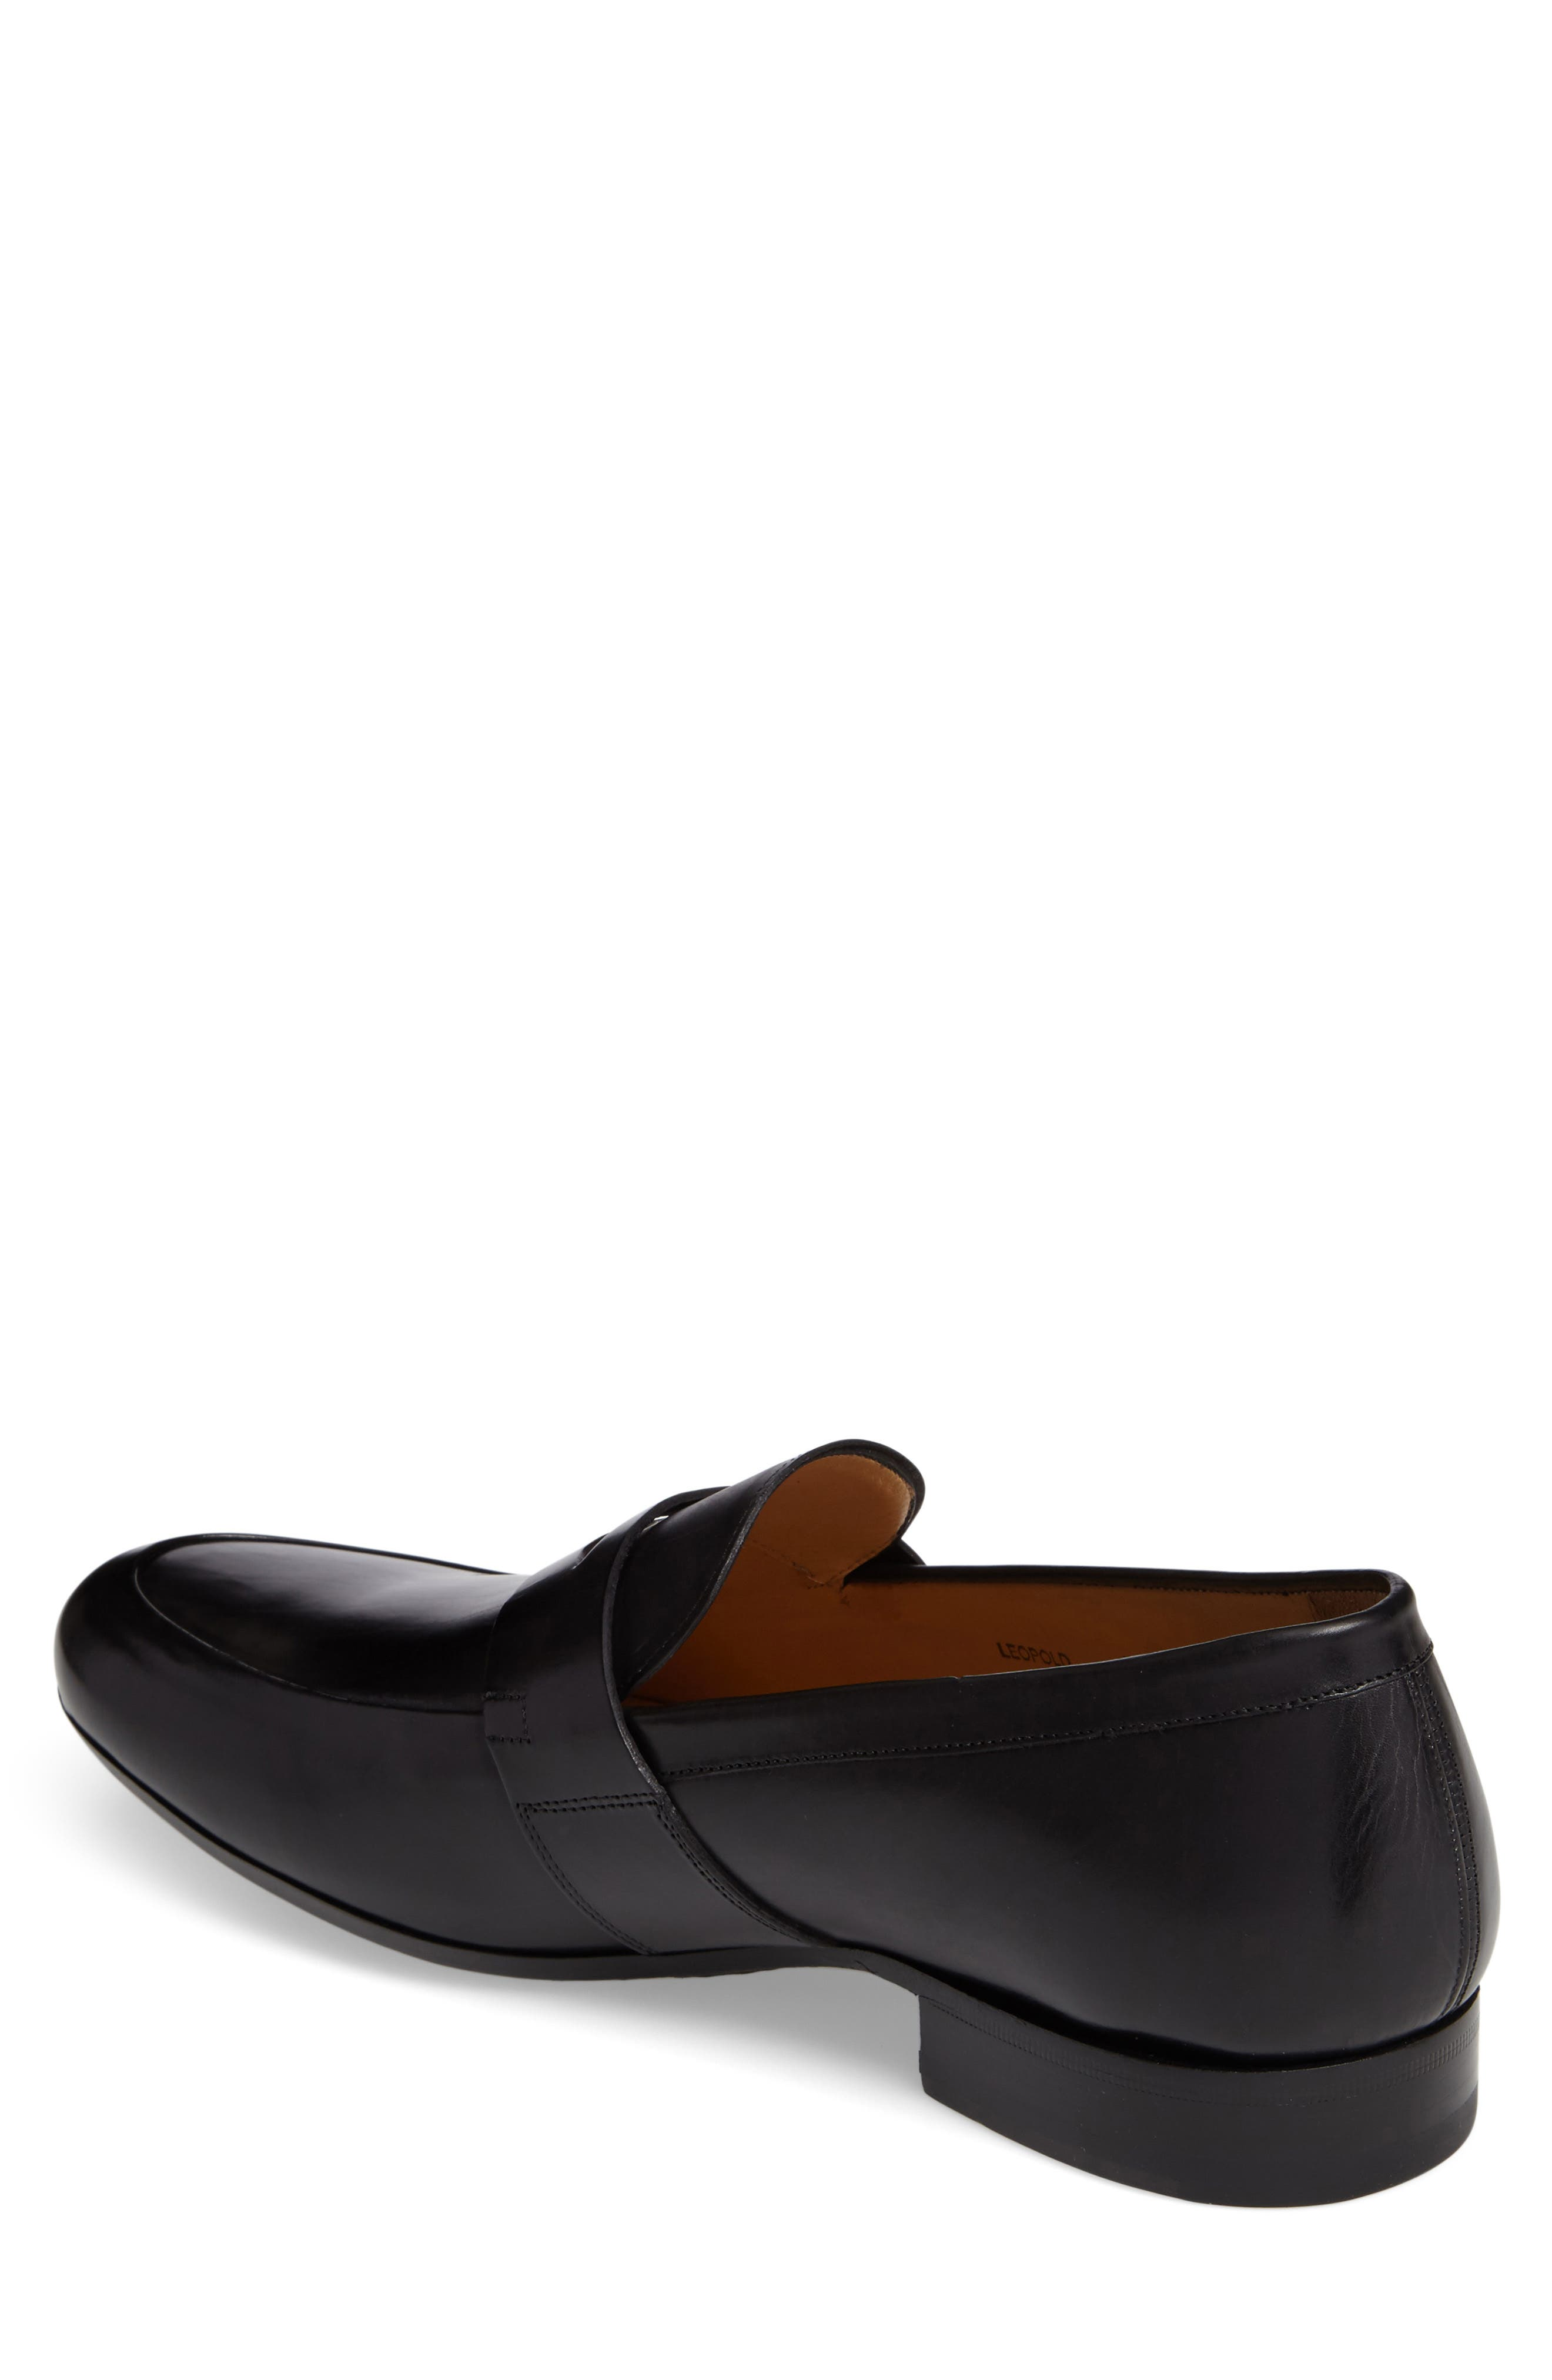 Leopold Penny Loafer,                             Alternate thumbnail 2, color,                             001